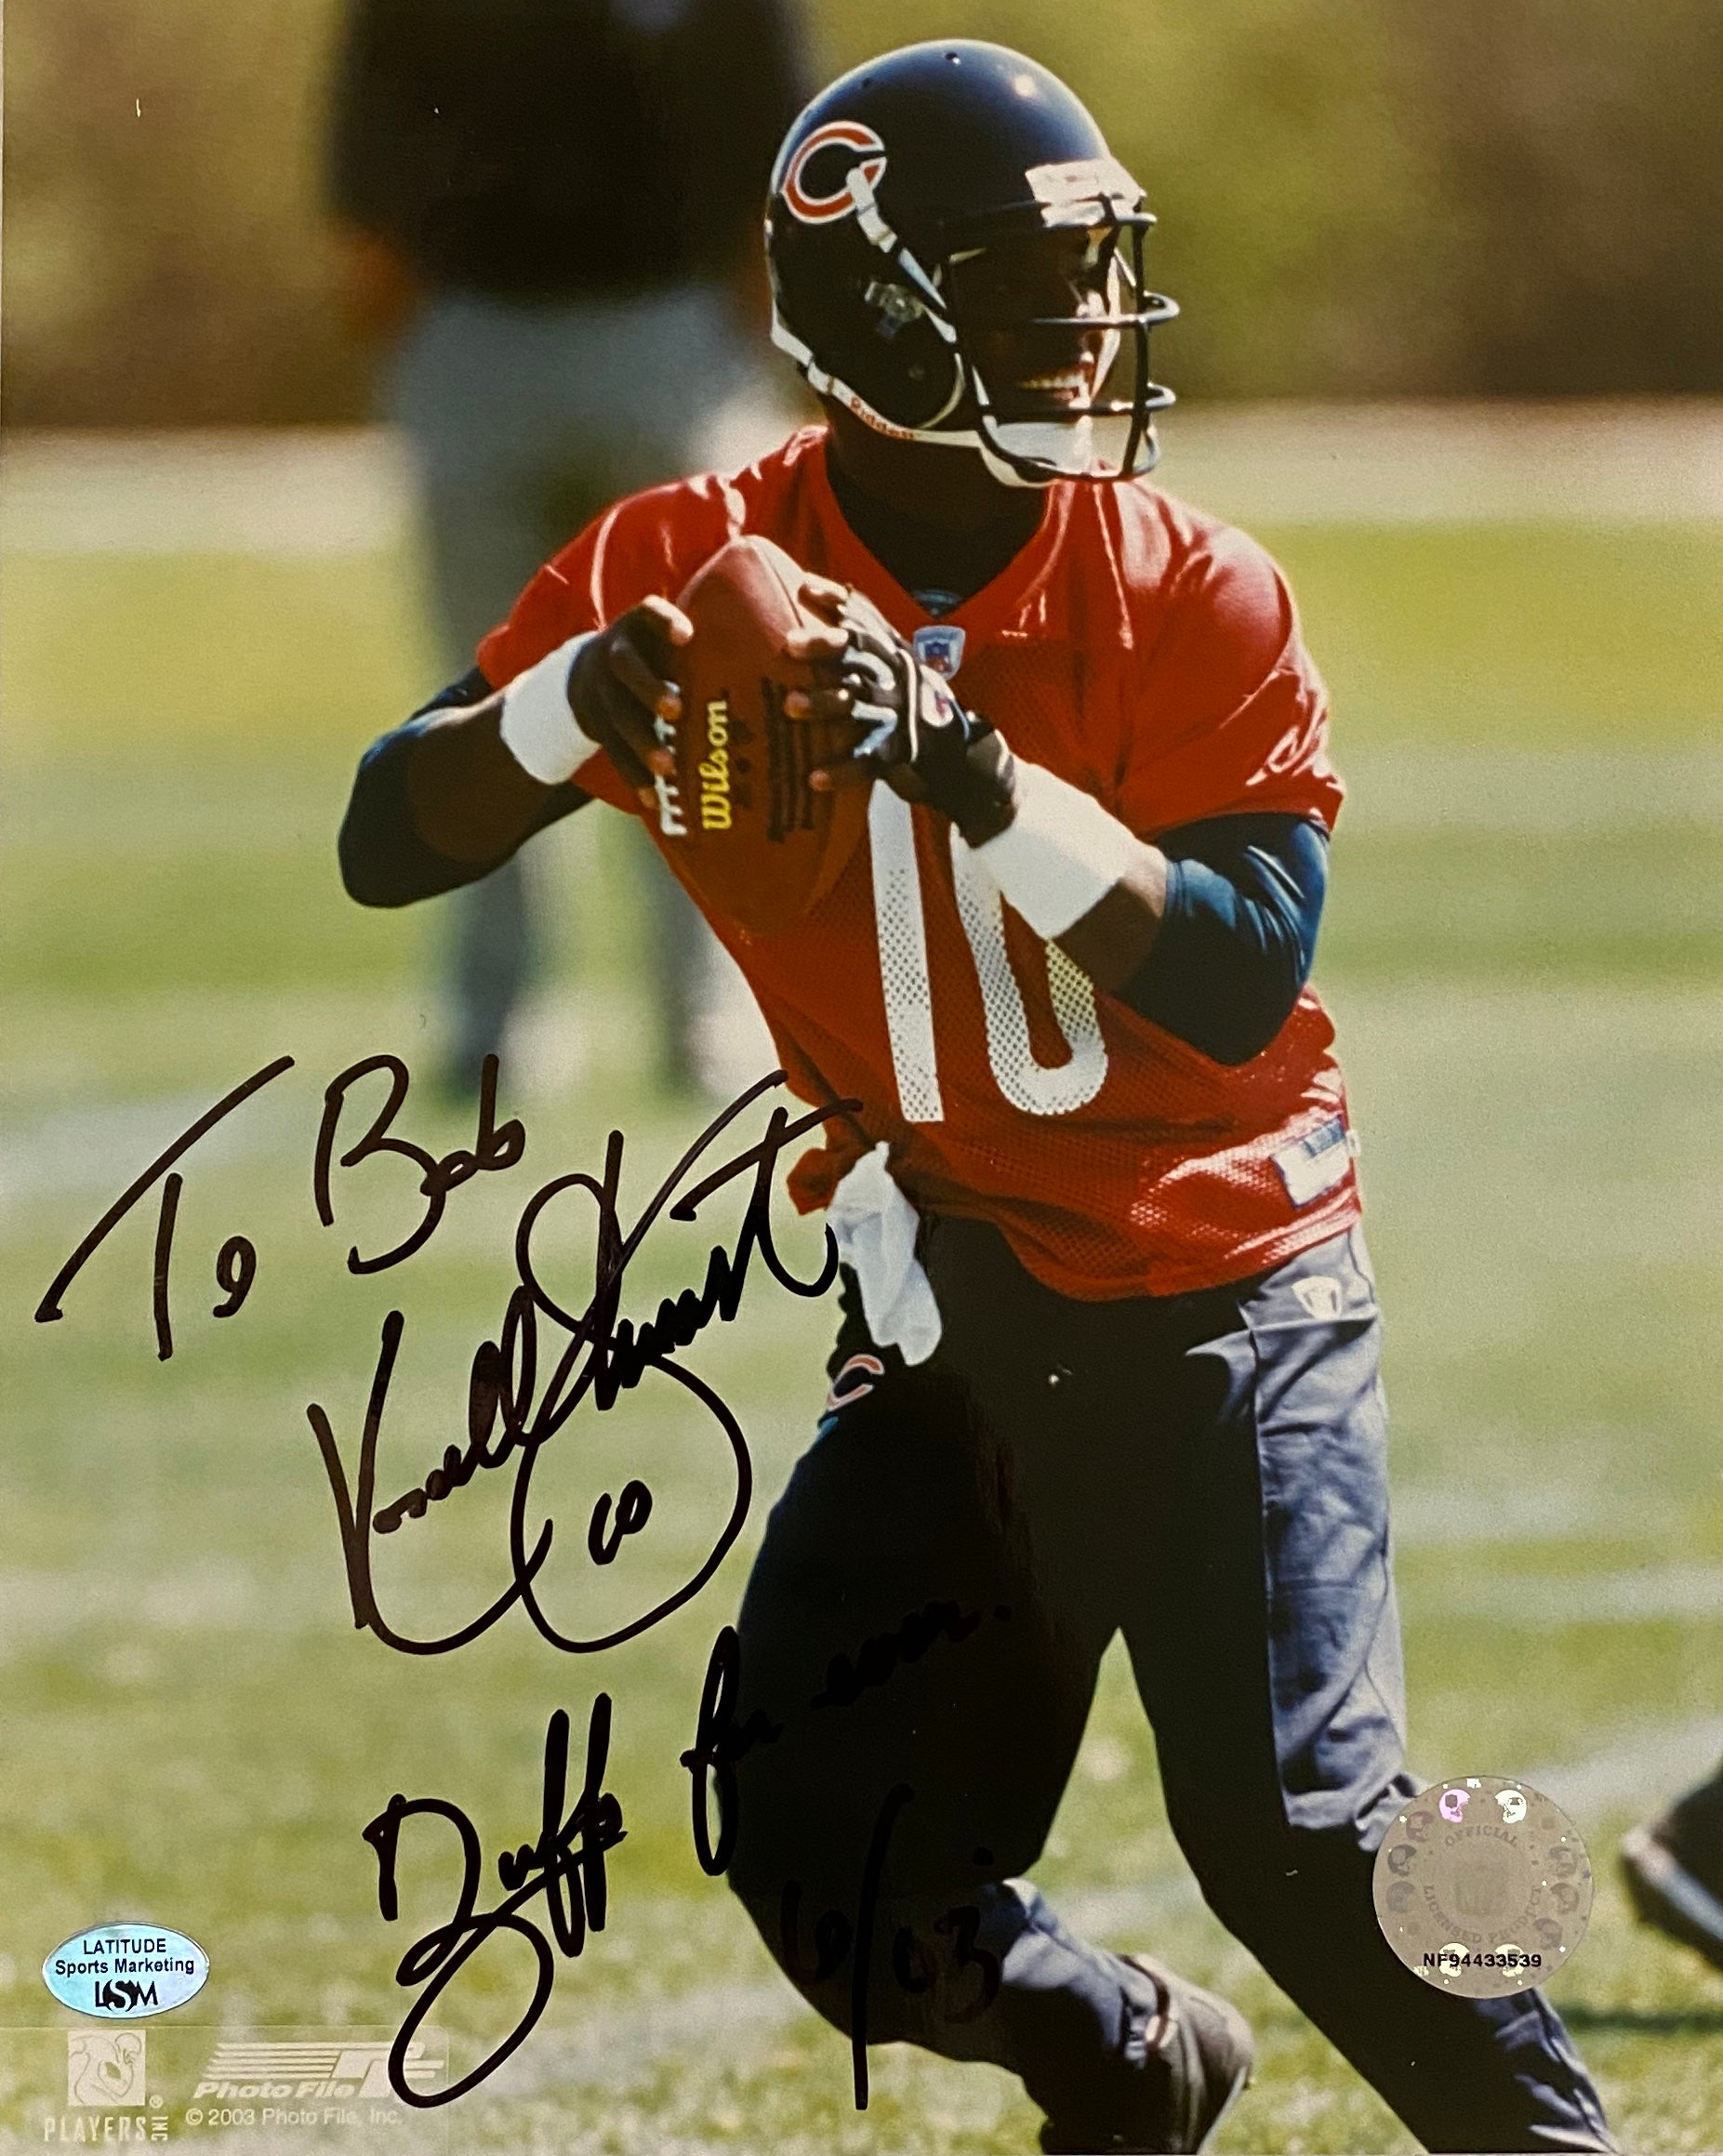 "Kordell Stewart Autographed Chicago Bears 8x10 Photo w/ COA & Hologram Inscribed ""To Bob"" ""Buffs Forever!"" - Latitude Sports Marketing"